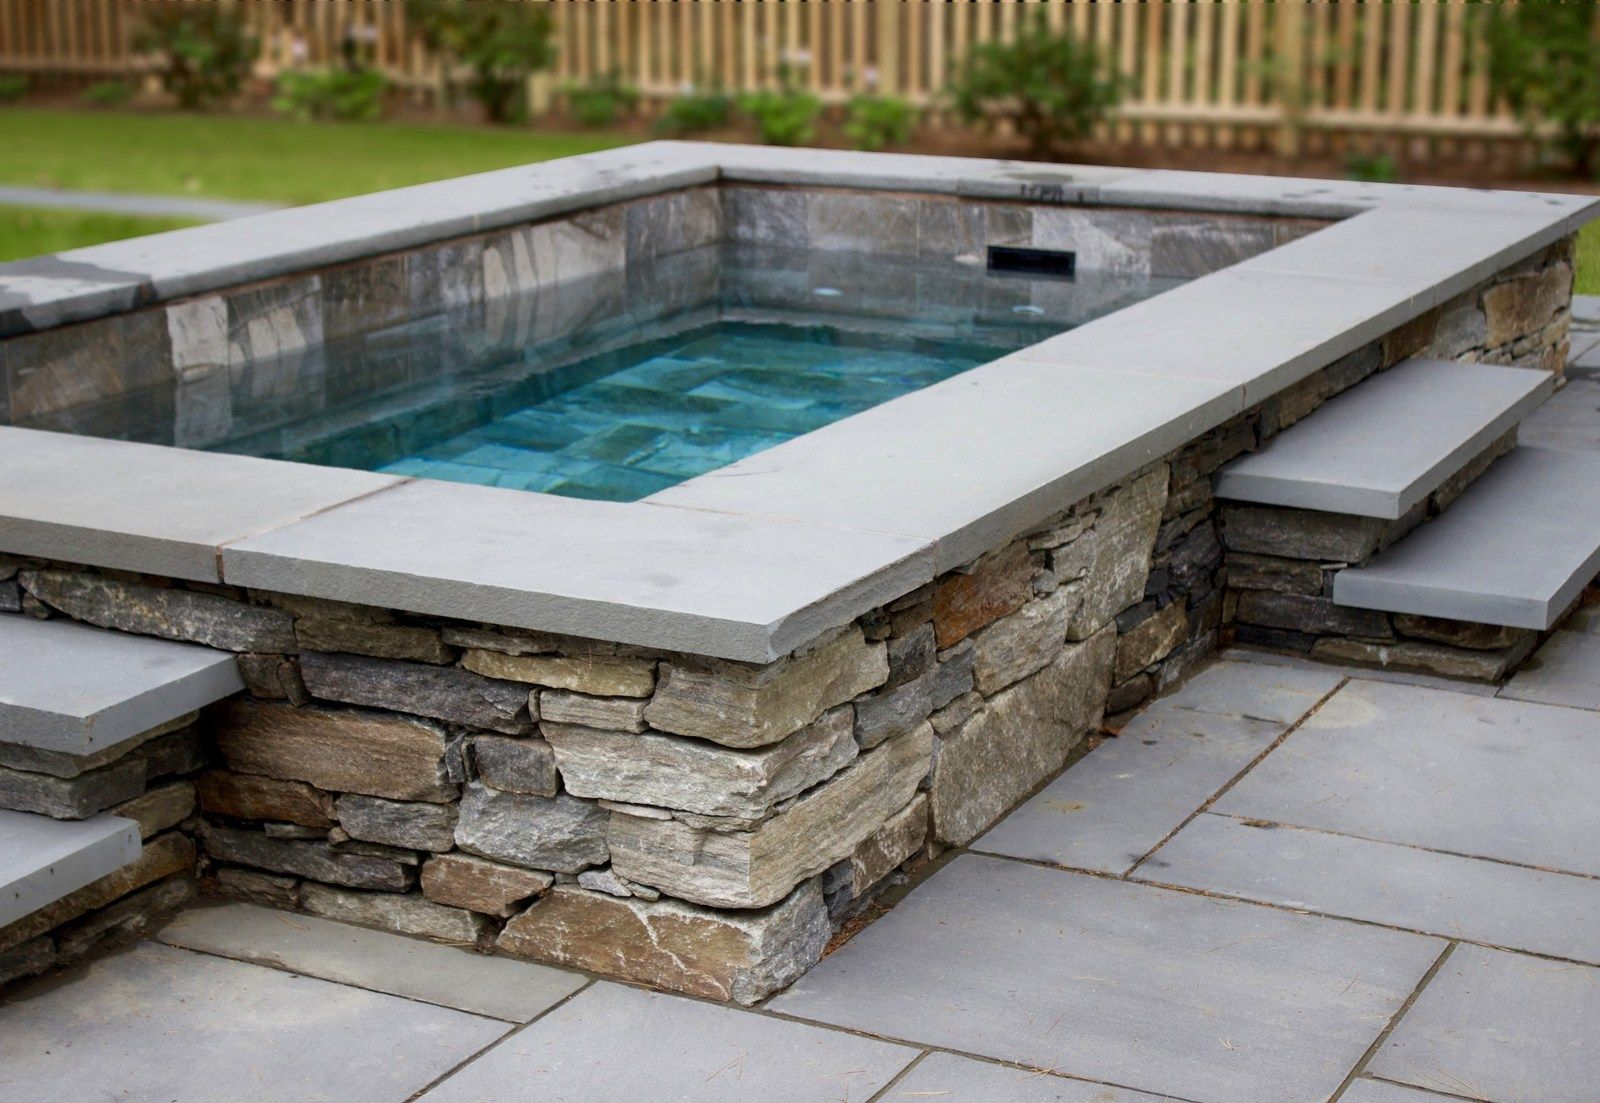 Two Pools In One A Plunge Pool Does Double Duty Small Above Ground Pool Small Backyard Pools Small Pool Design